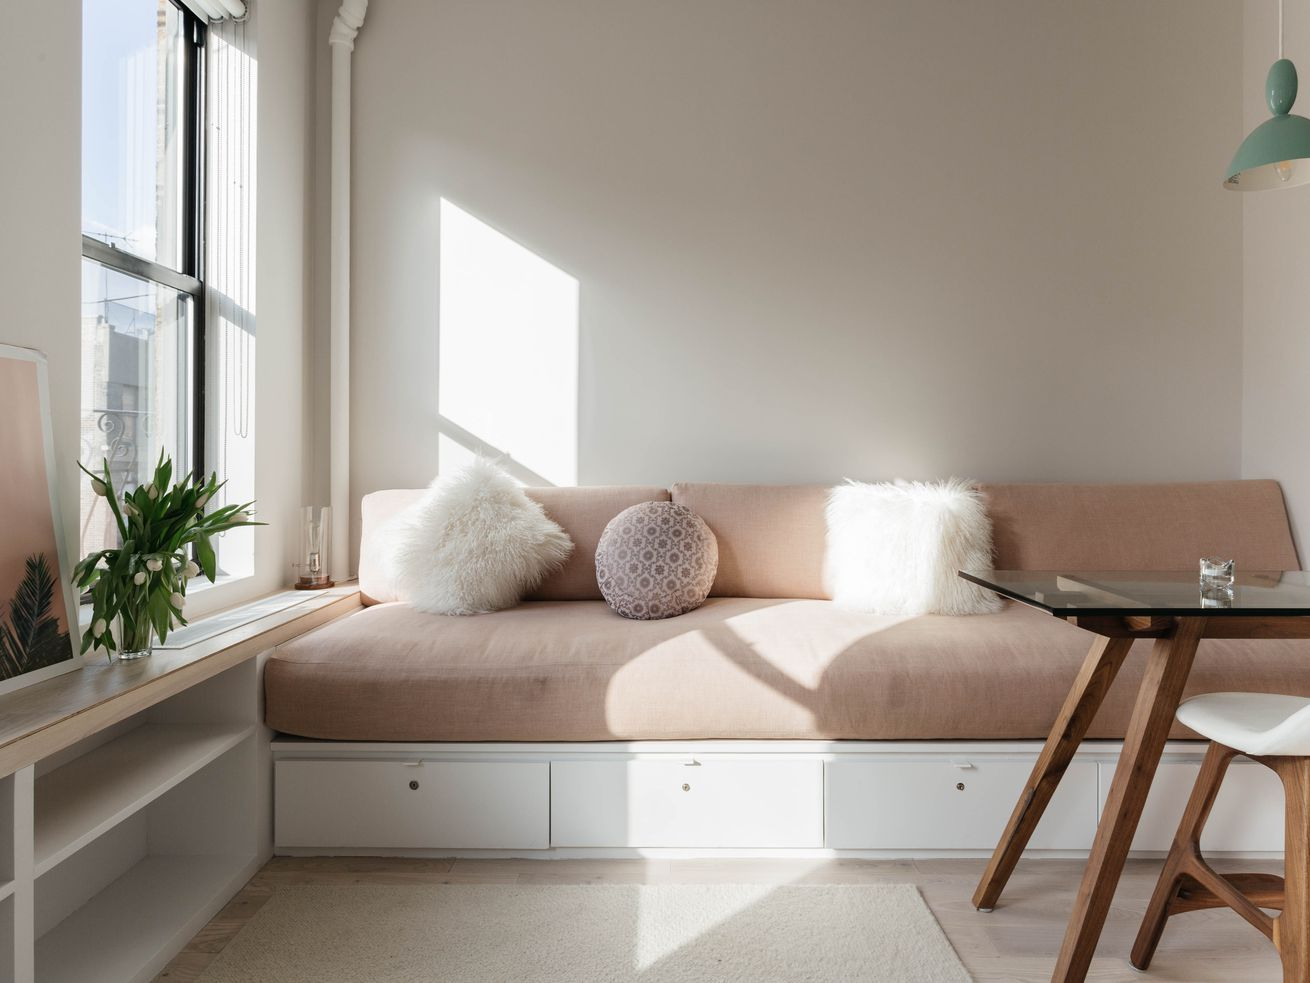 A dusty pink couch in a living room with a window and a glass coffee table.